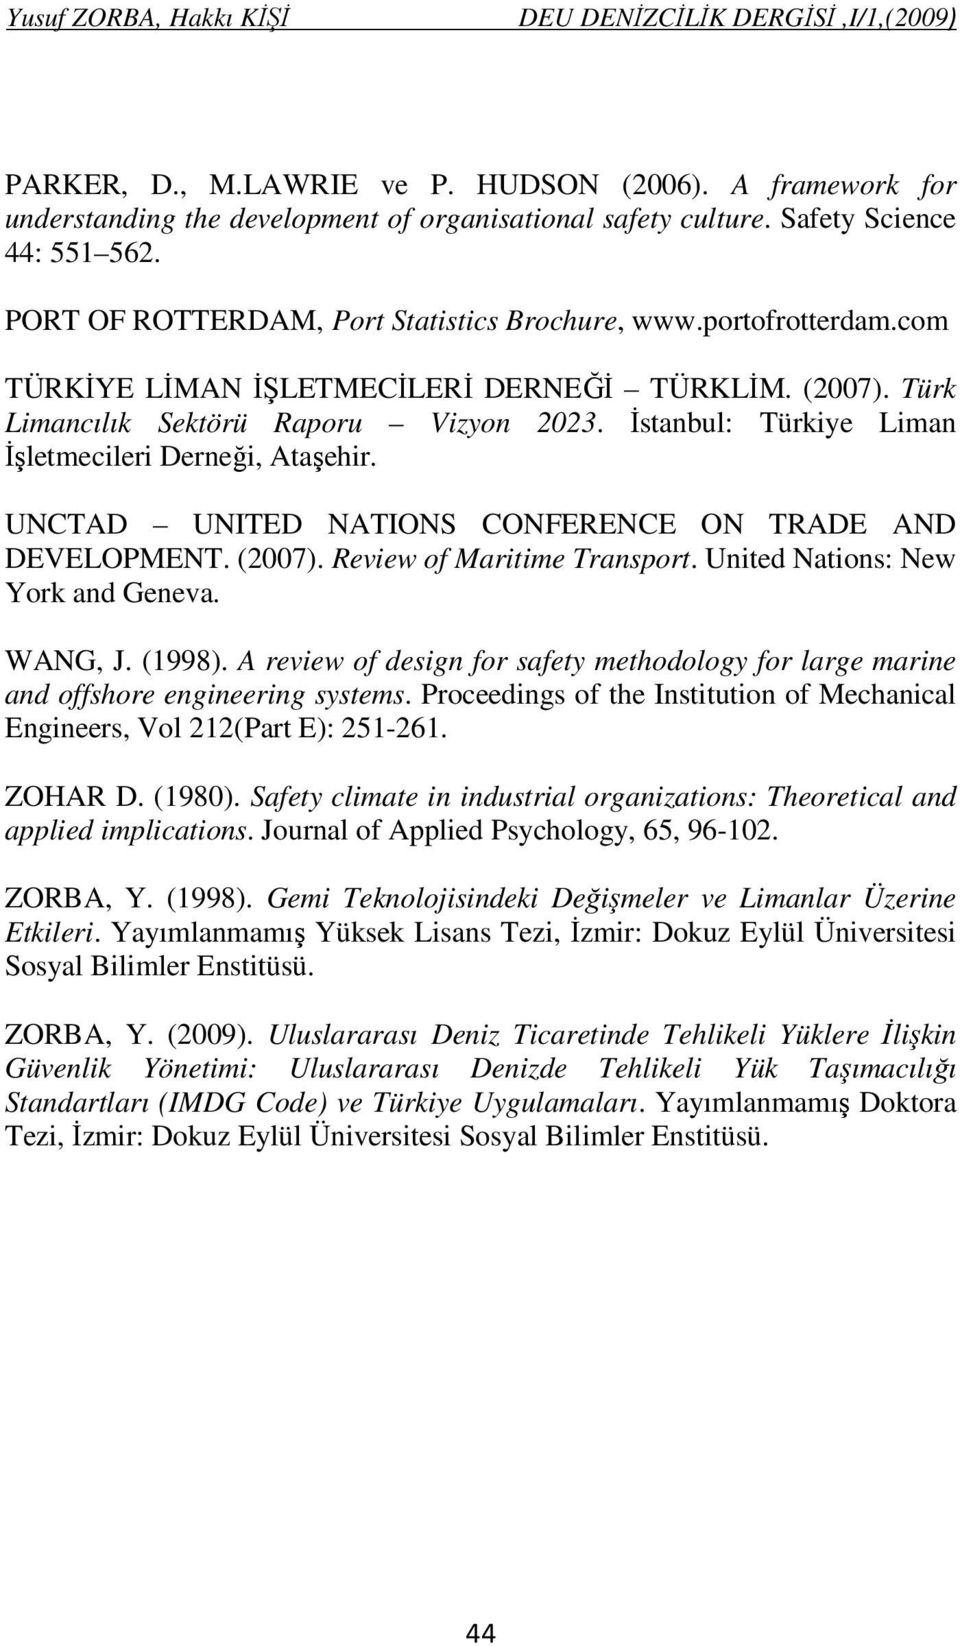 İstanbul: Türkiye Liman İşletmecileri Derneği, Ataşehir. UNCTAD UNITED NATIONS CONFERENCE ON TRADE AND DEVELOPMENT. (2007). Review of Maritime Transport. United Nations: New York and Geneva. WANG, J.